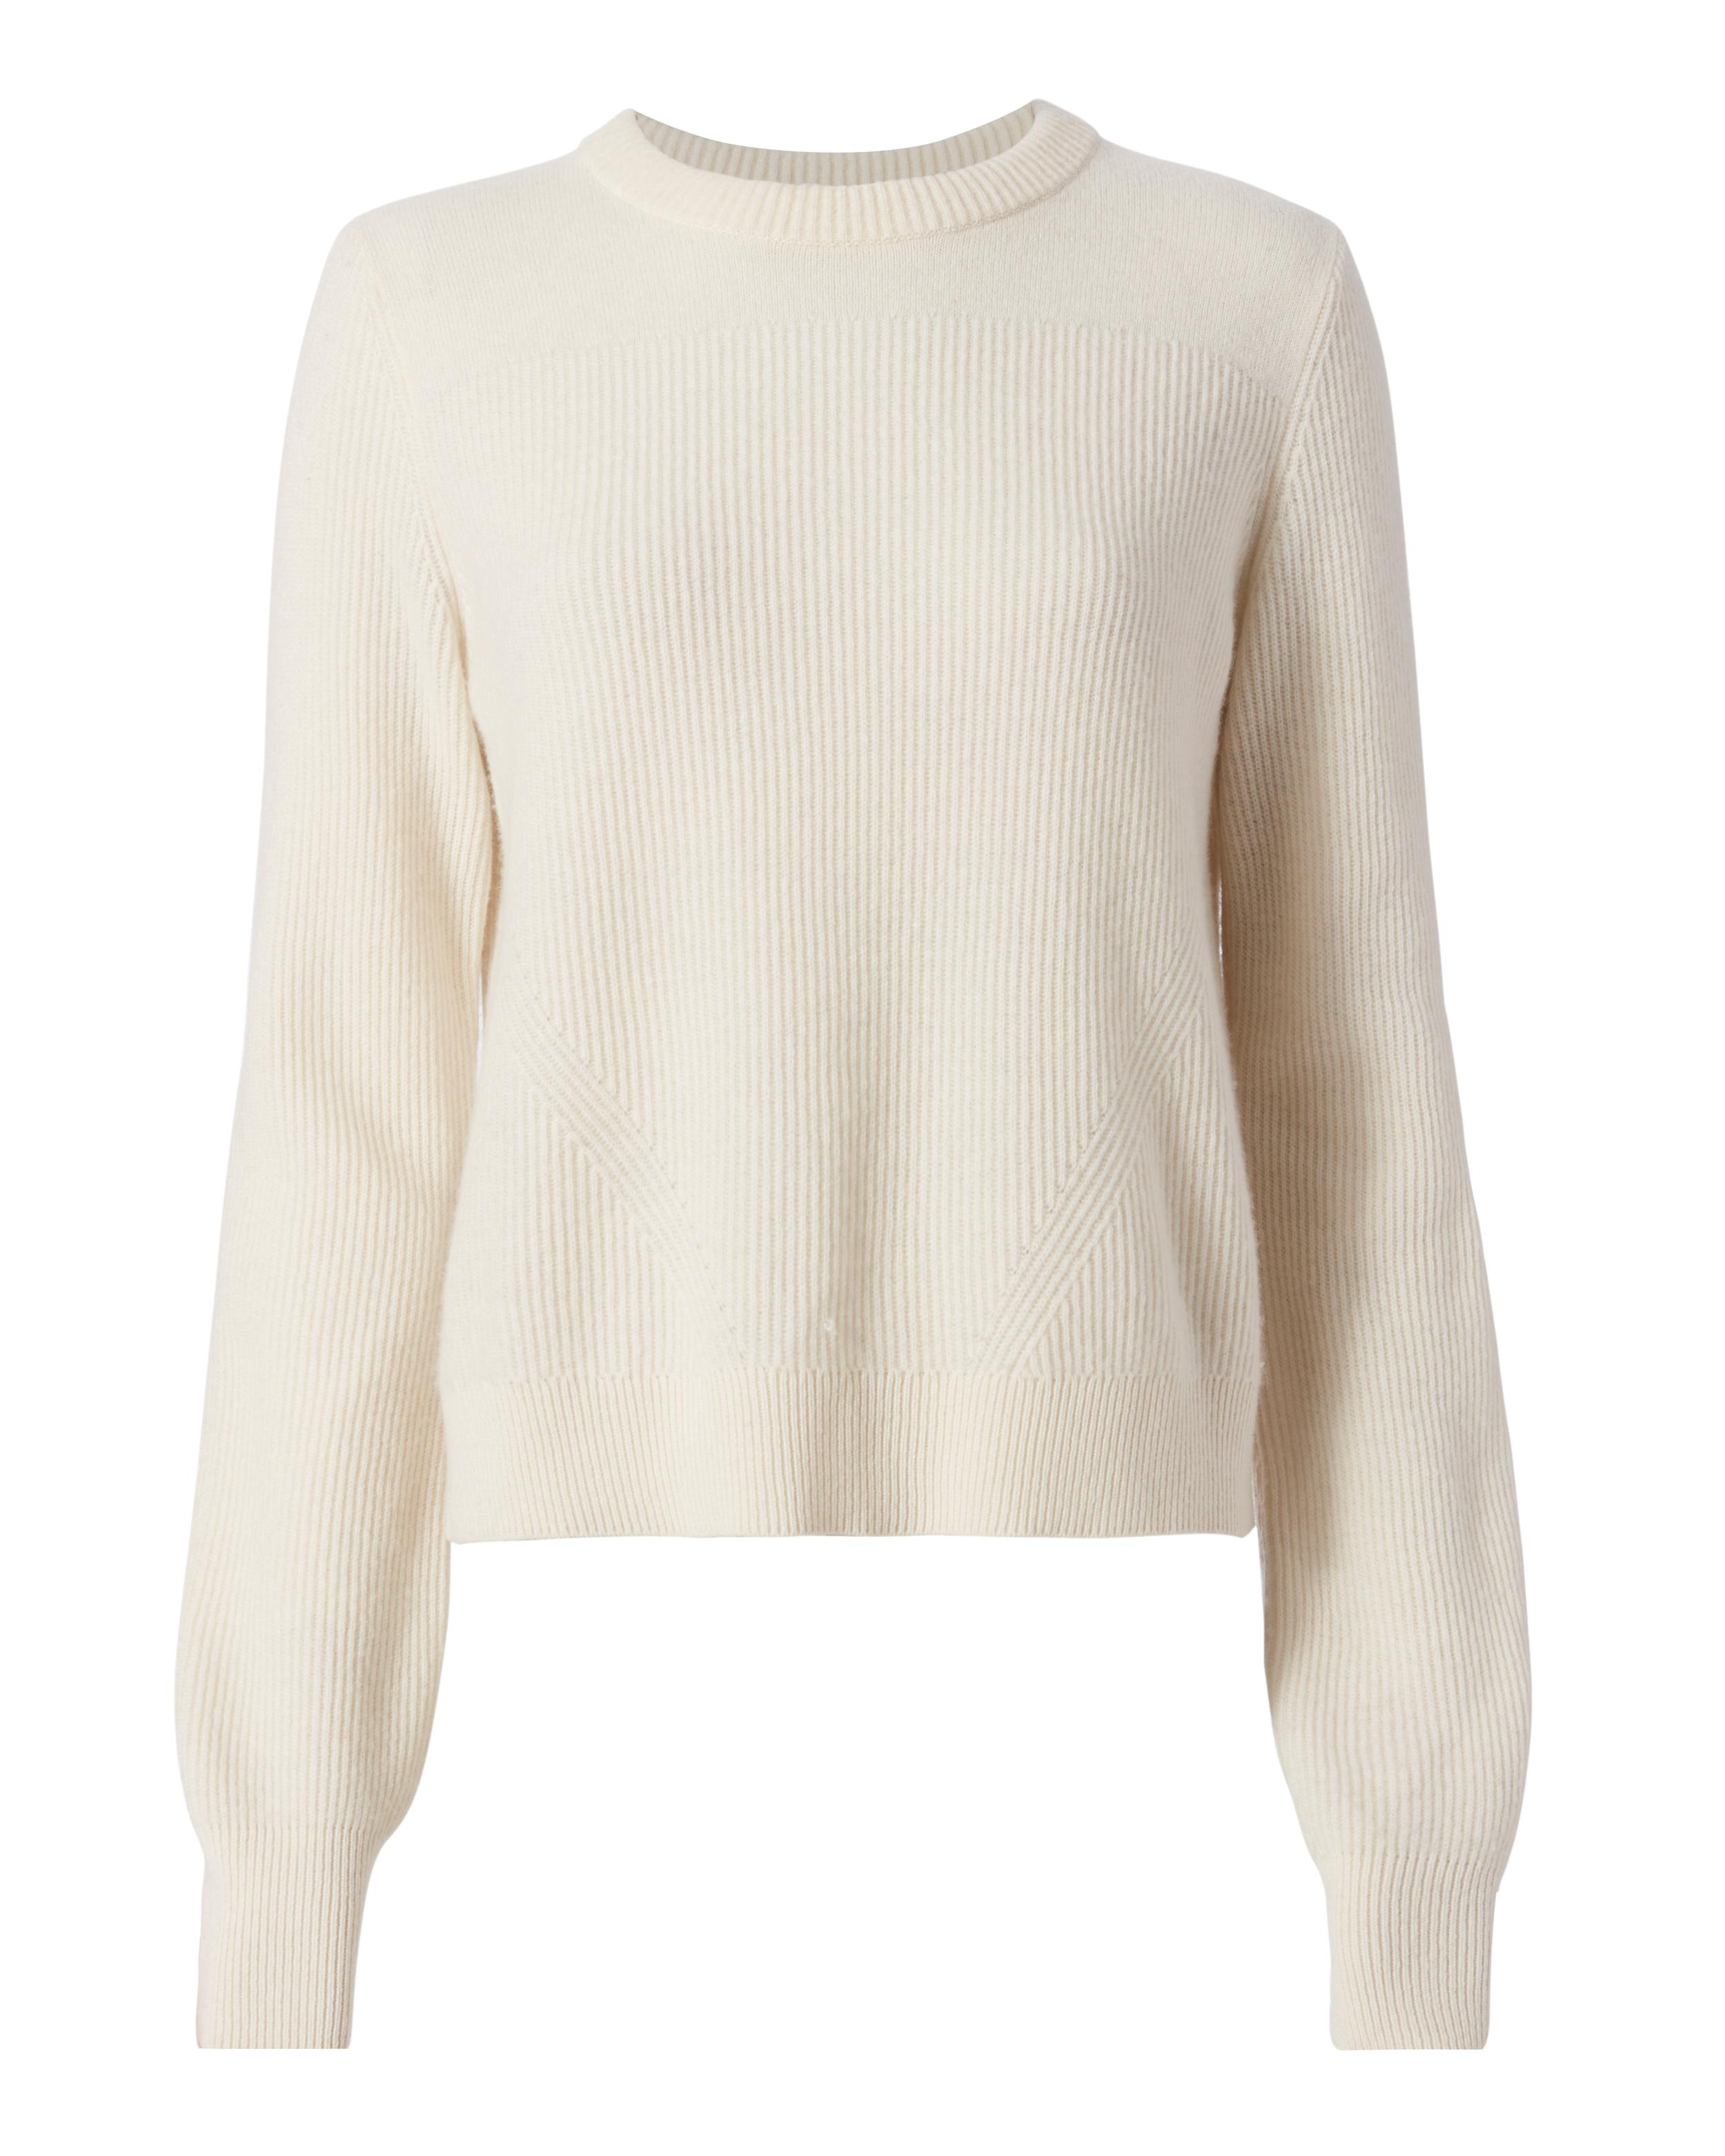 Rag & bone Ace Cropped Sweater in White | Lyst